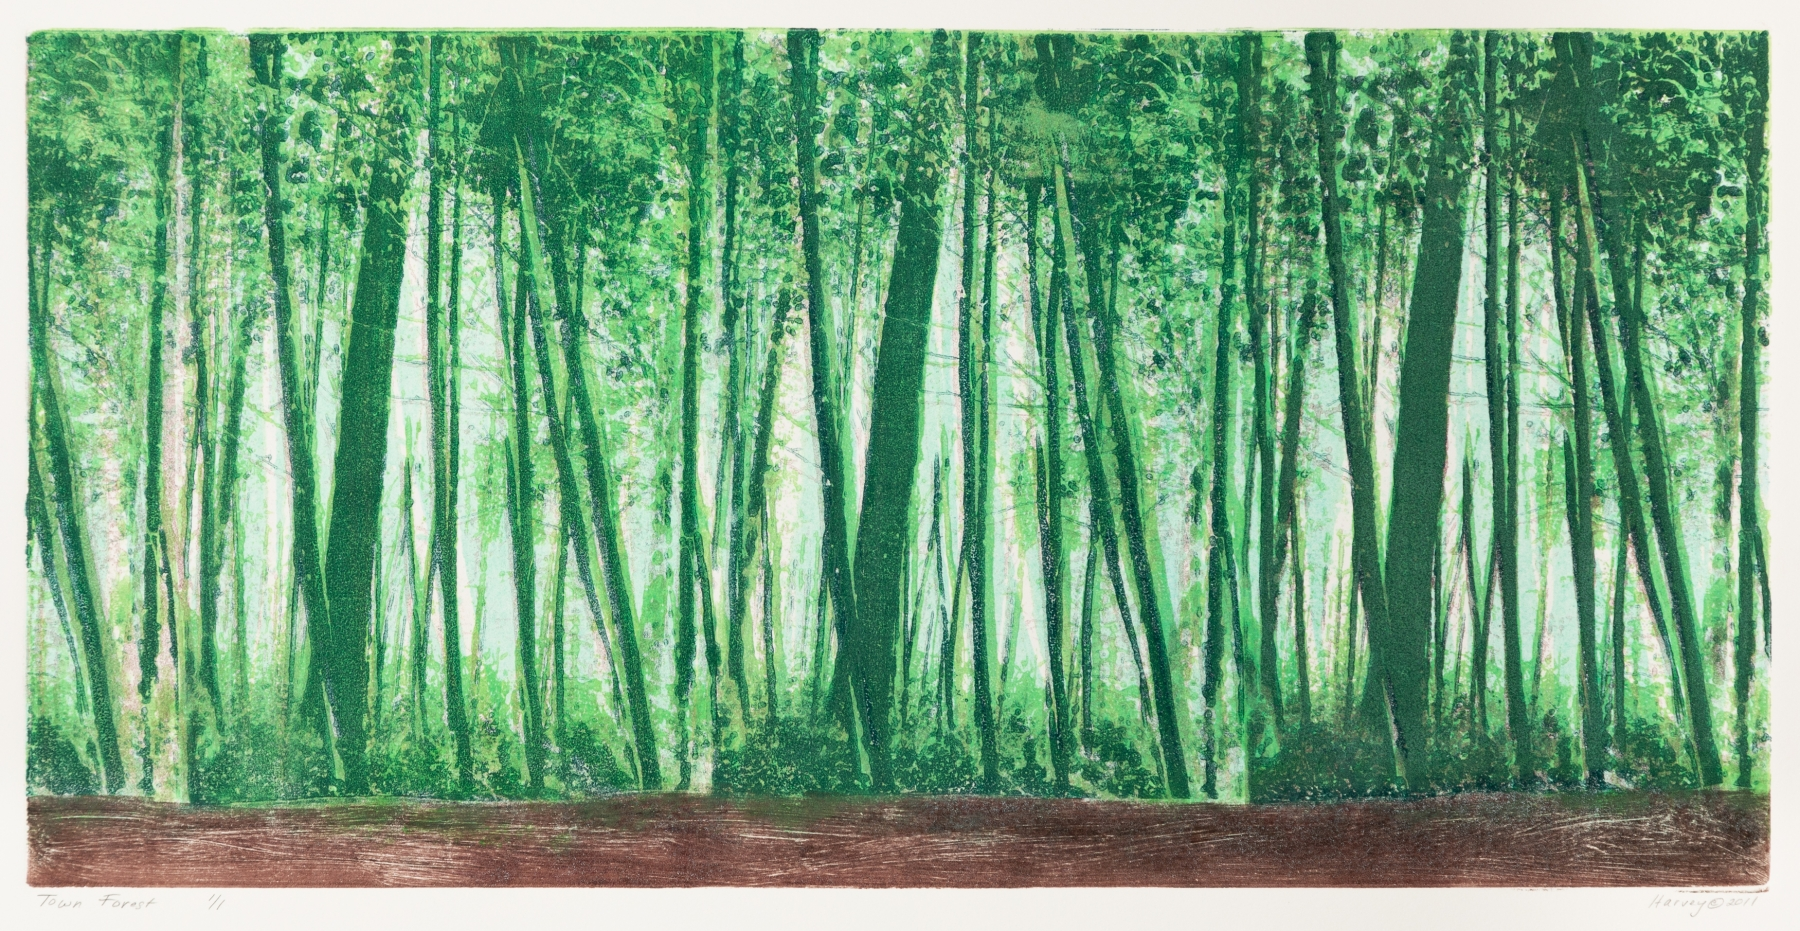 Harvey_TownForest_Monoprint_31x19.75_500